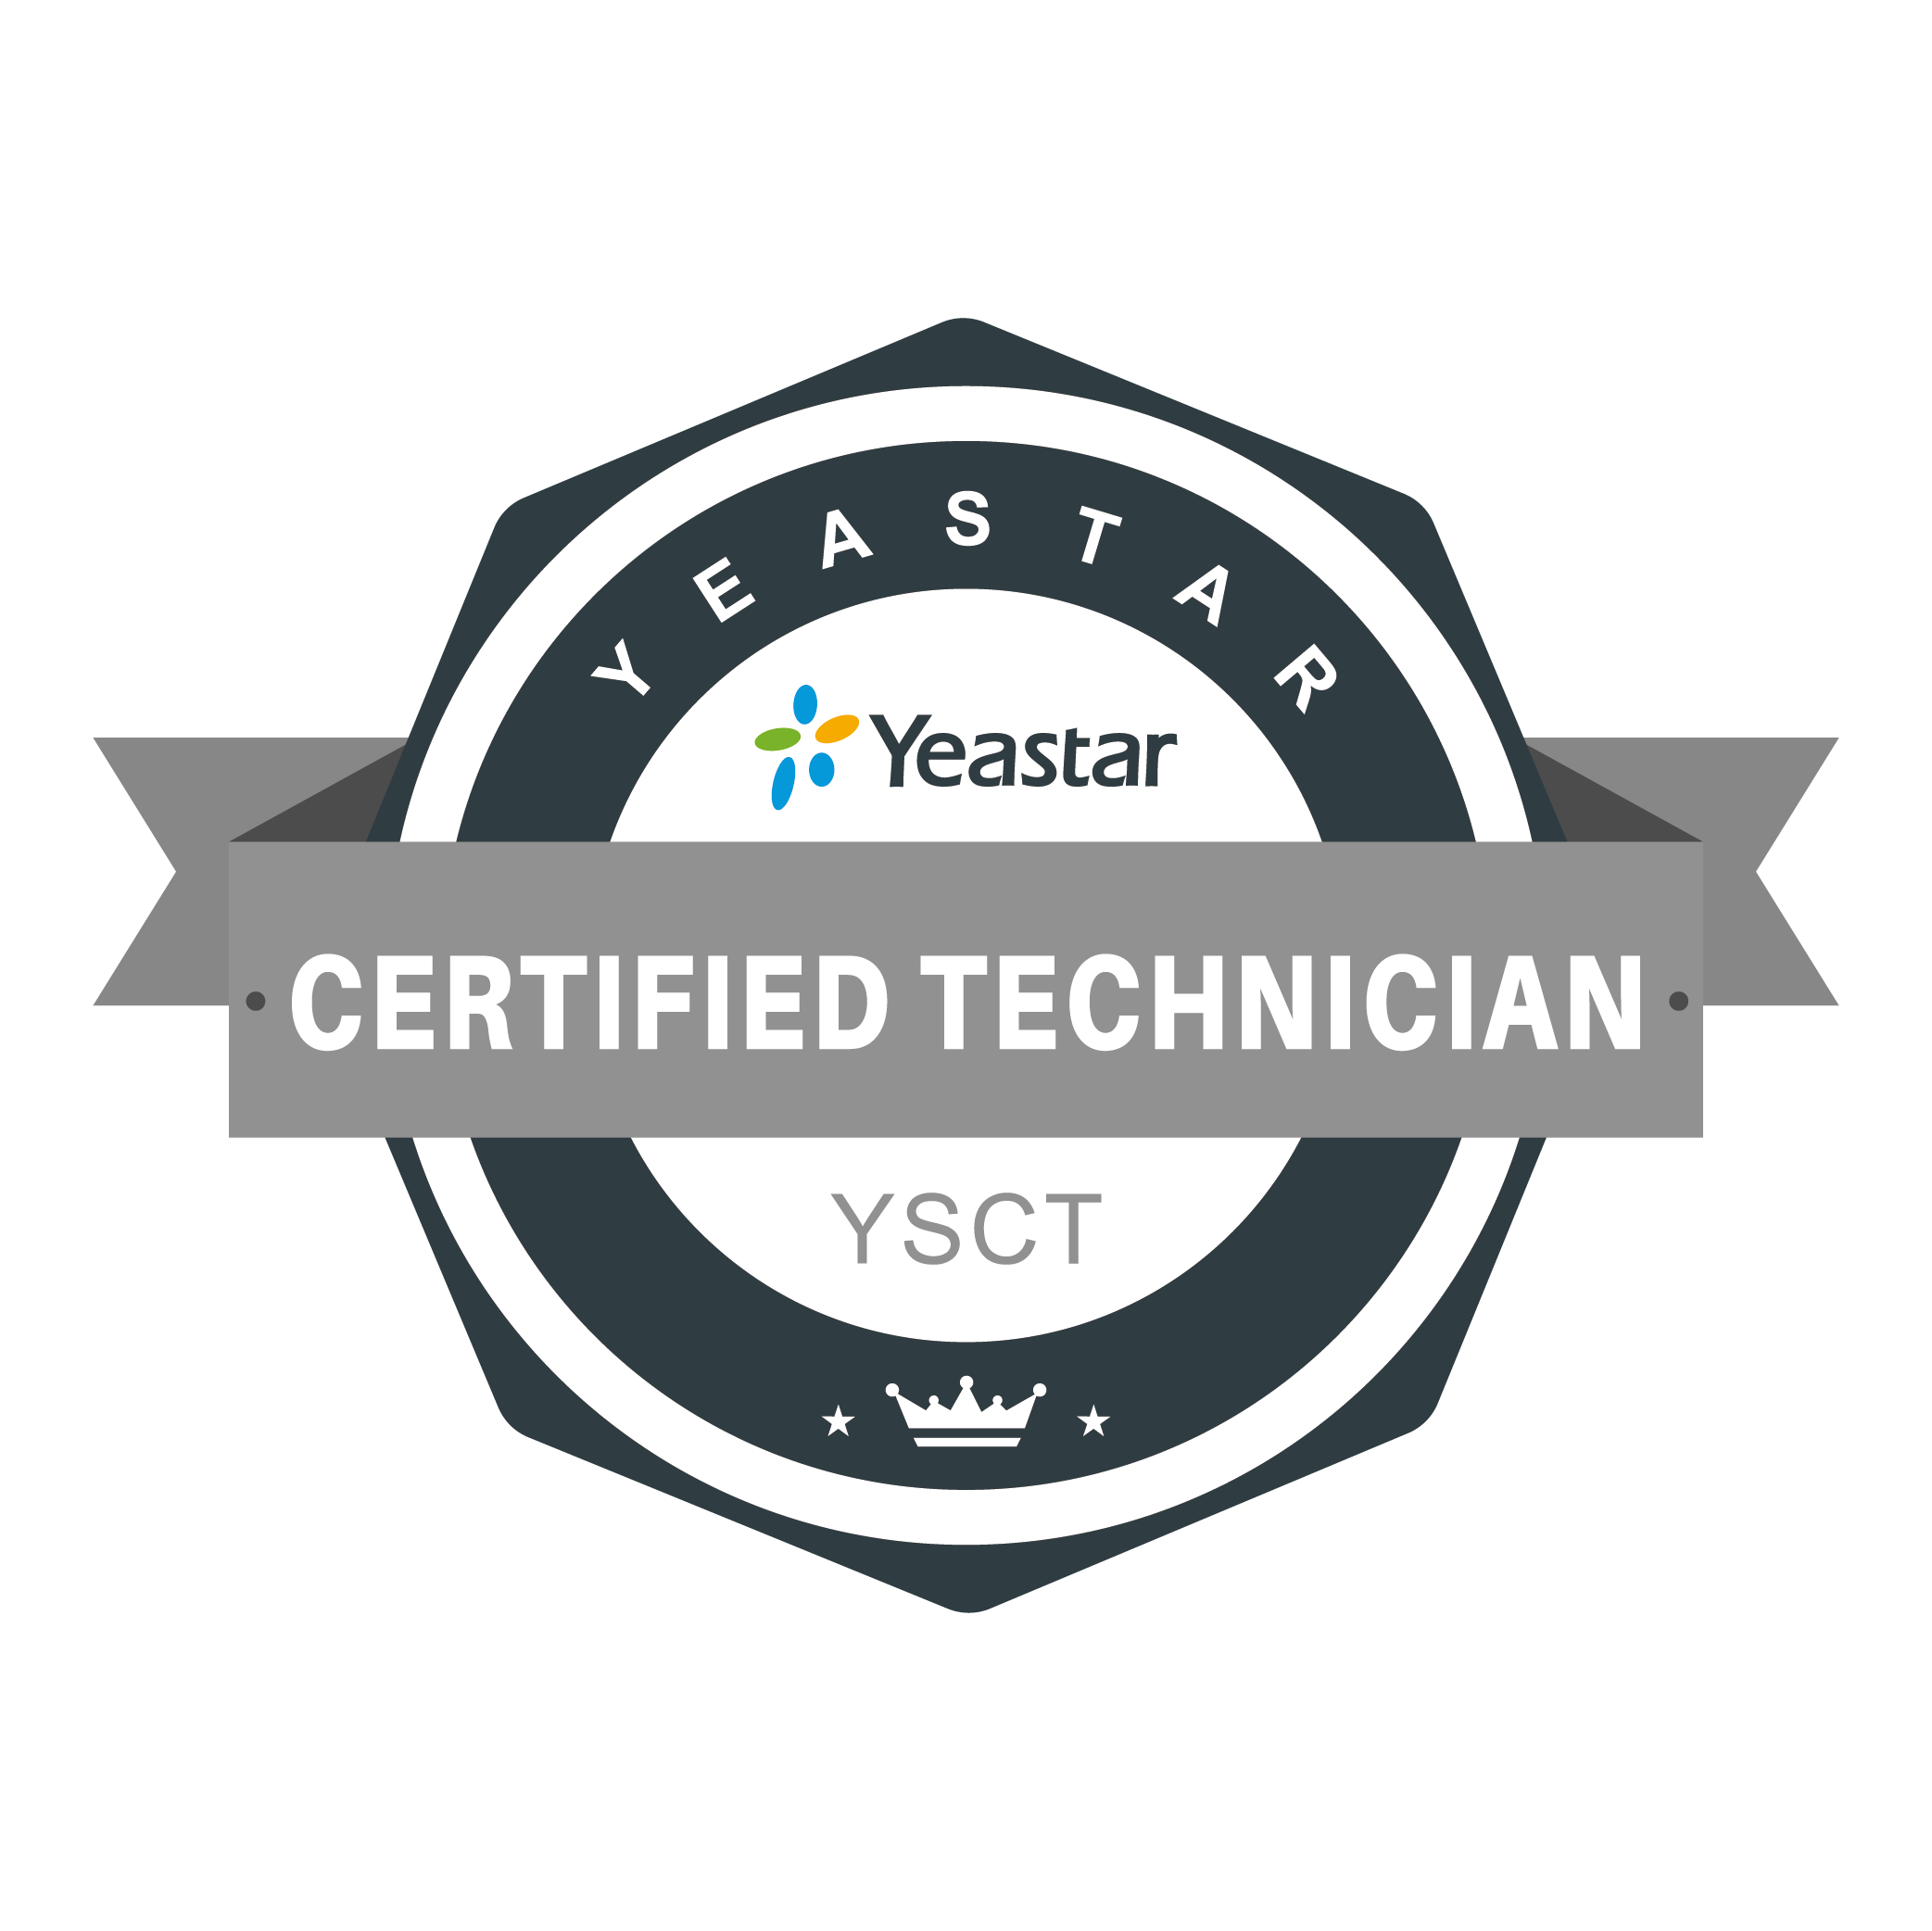 ysct yeastar certified technician